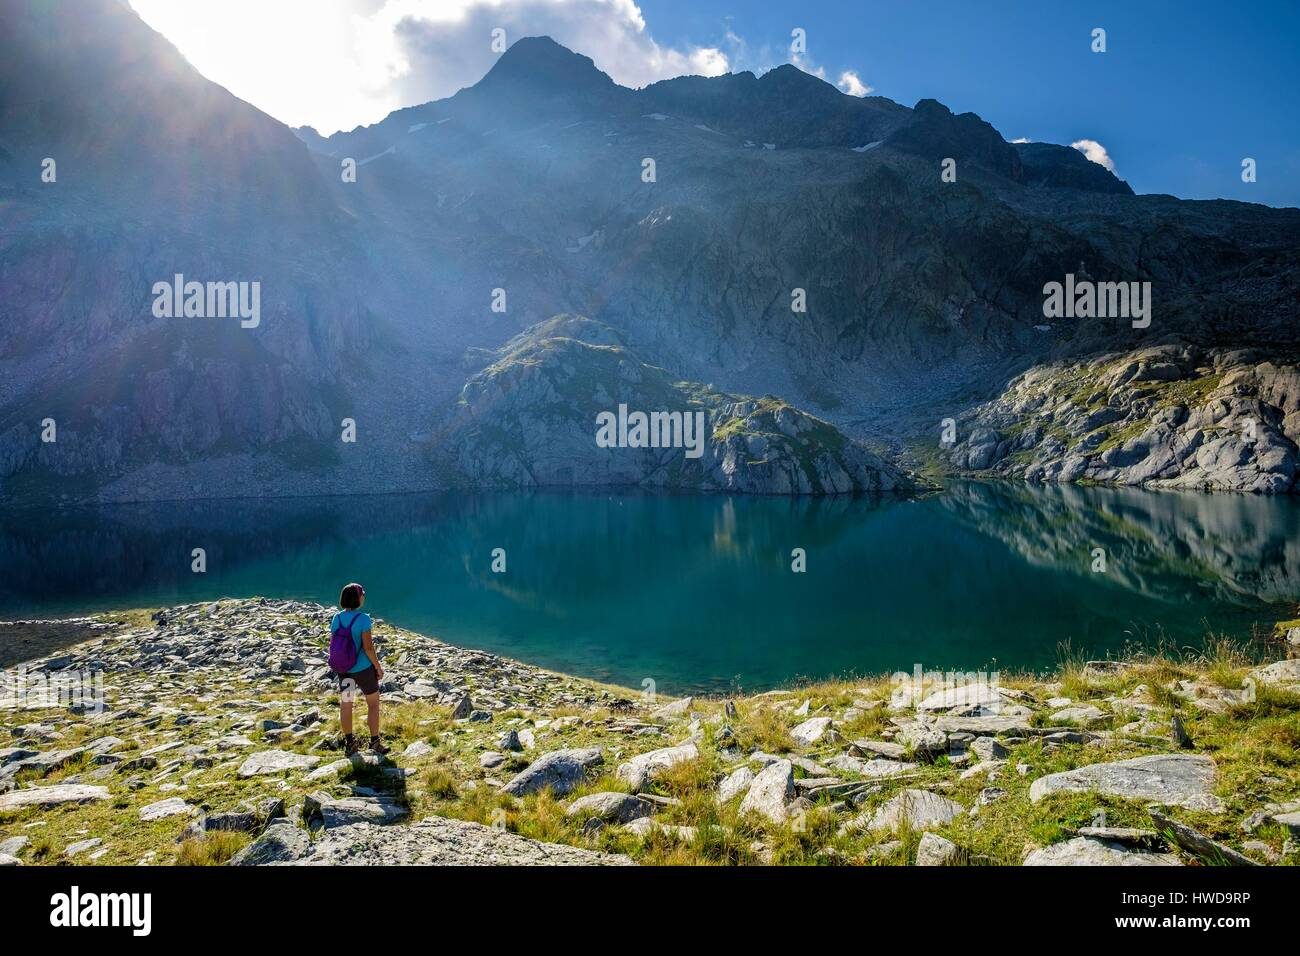 Ferriere Stock Photos Ferriere Stock Images Page 3 Alamy